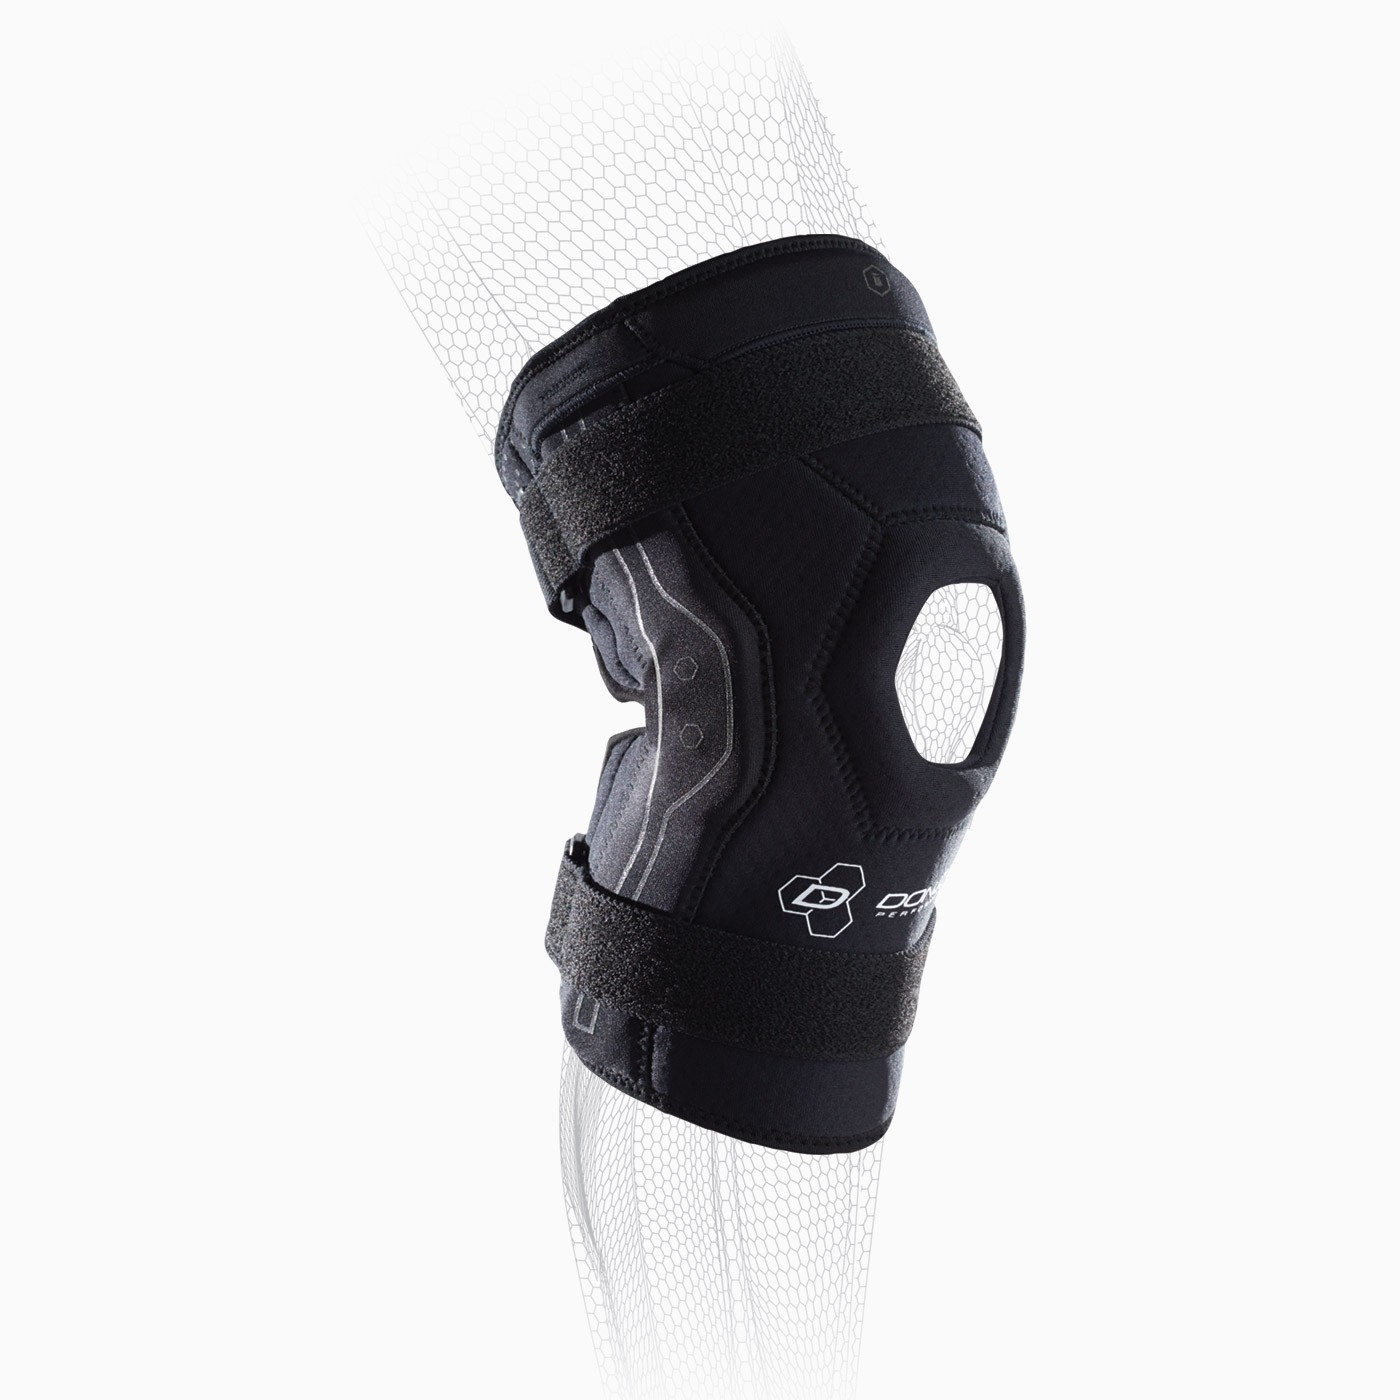 de8007a2be DonJoy Performance Bionic Knee Brace | DonJoyPerformance.com